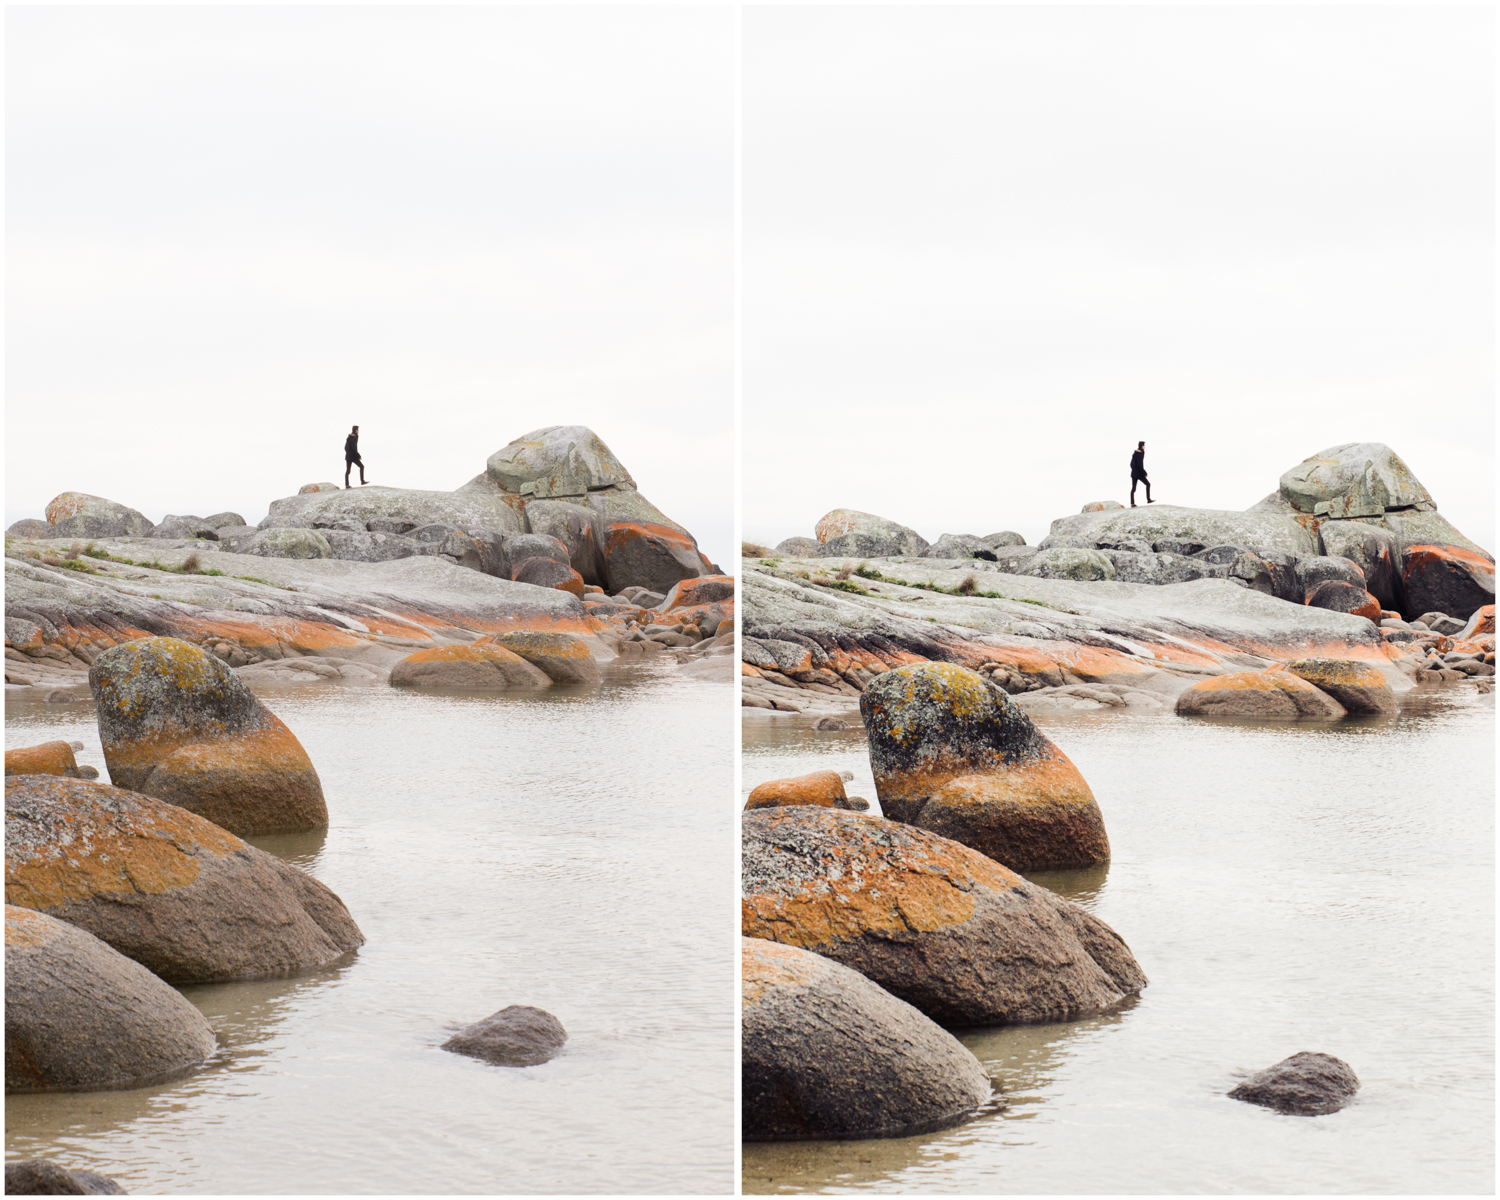 VSCO Cam Analogue/Aesthetic A6: How to create in Lightroom — Jenny